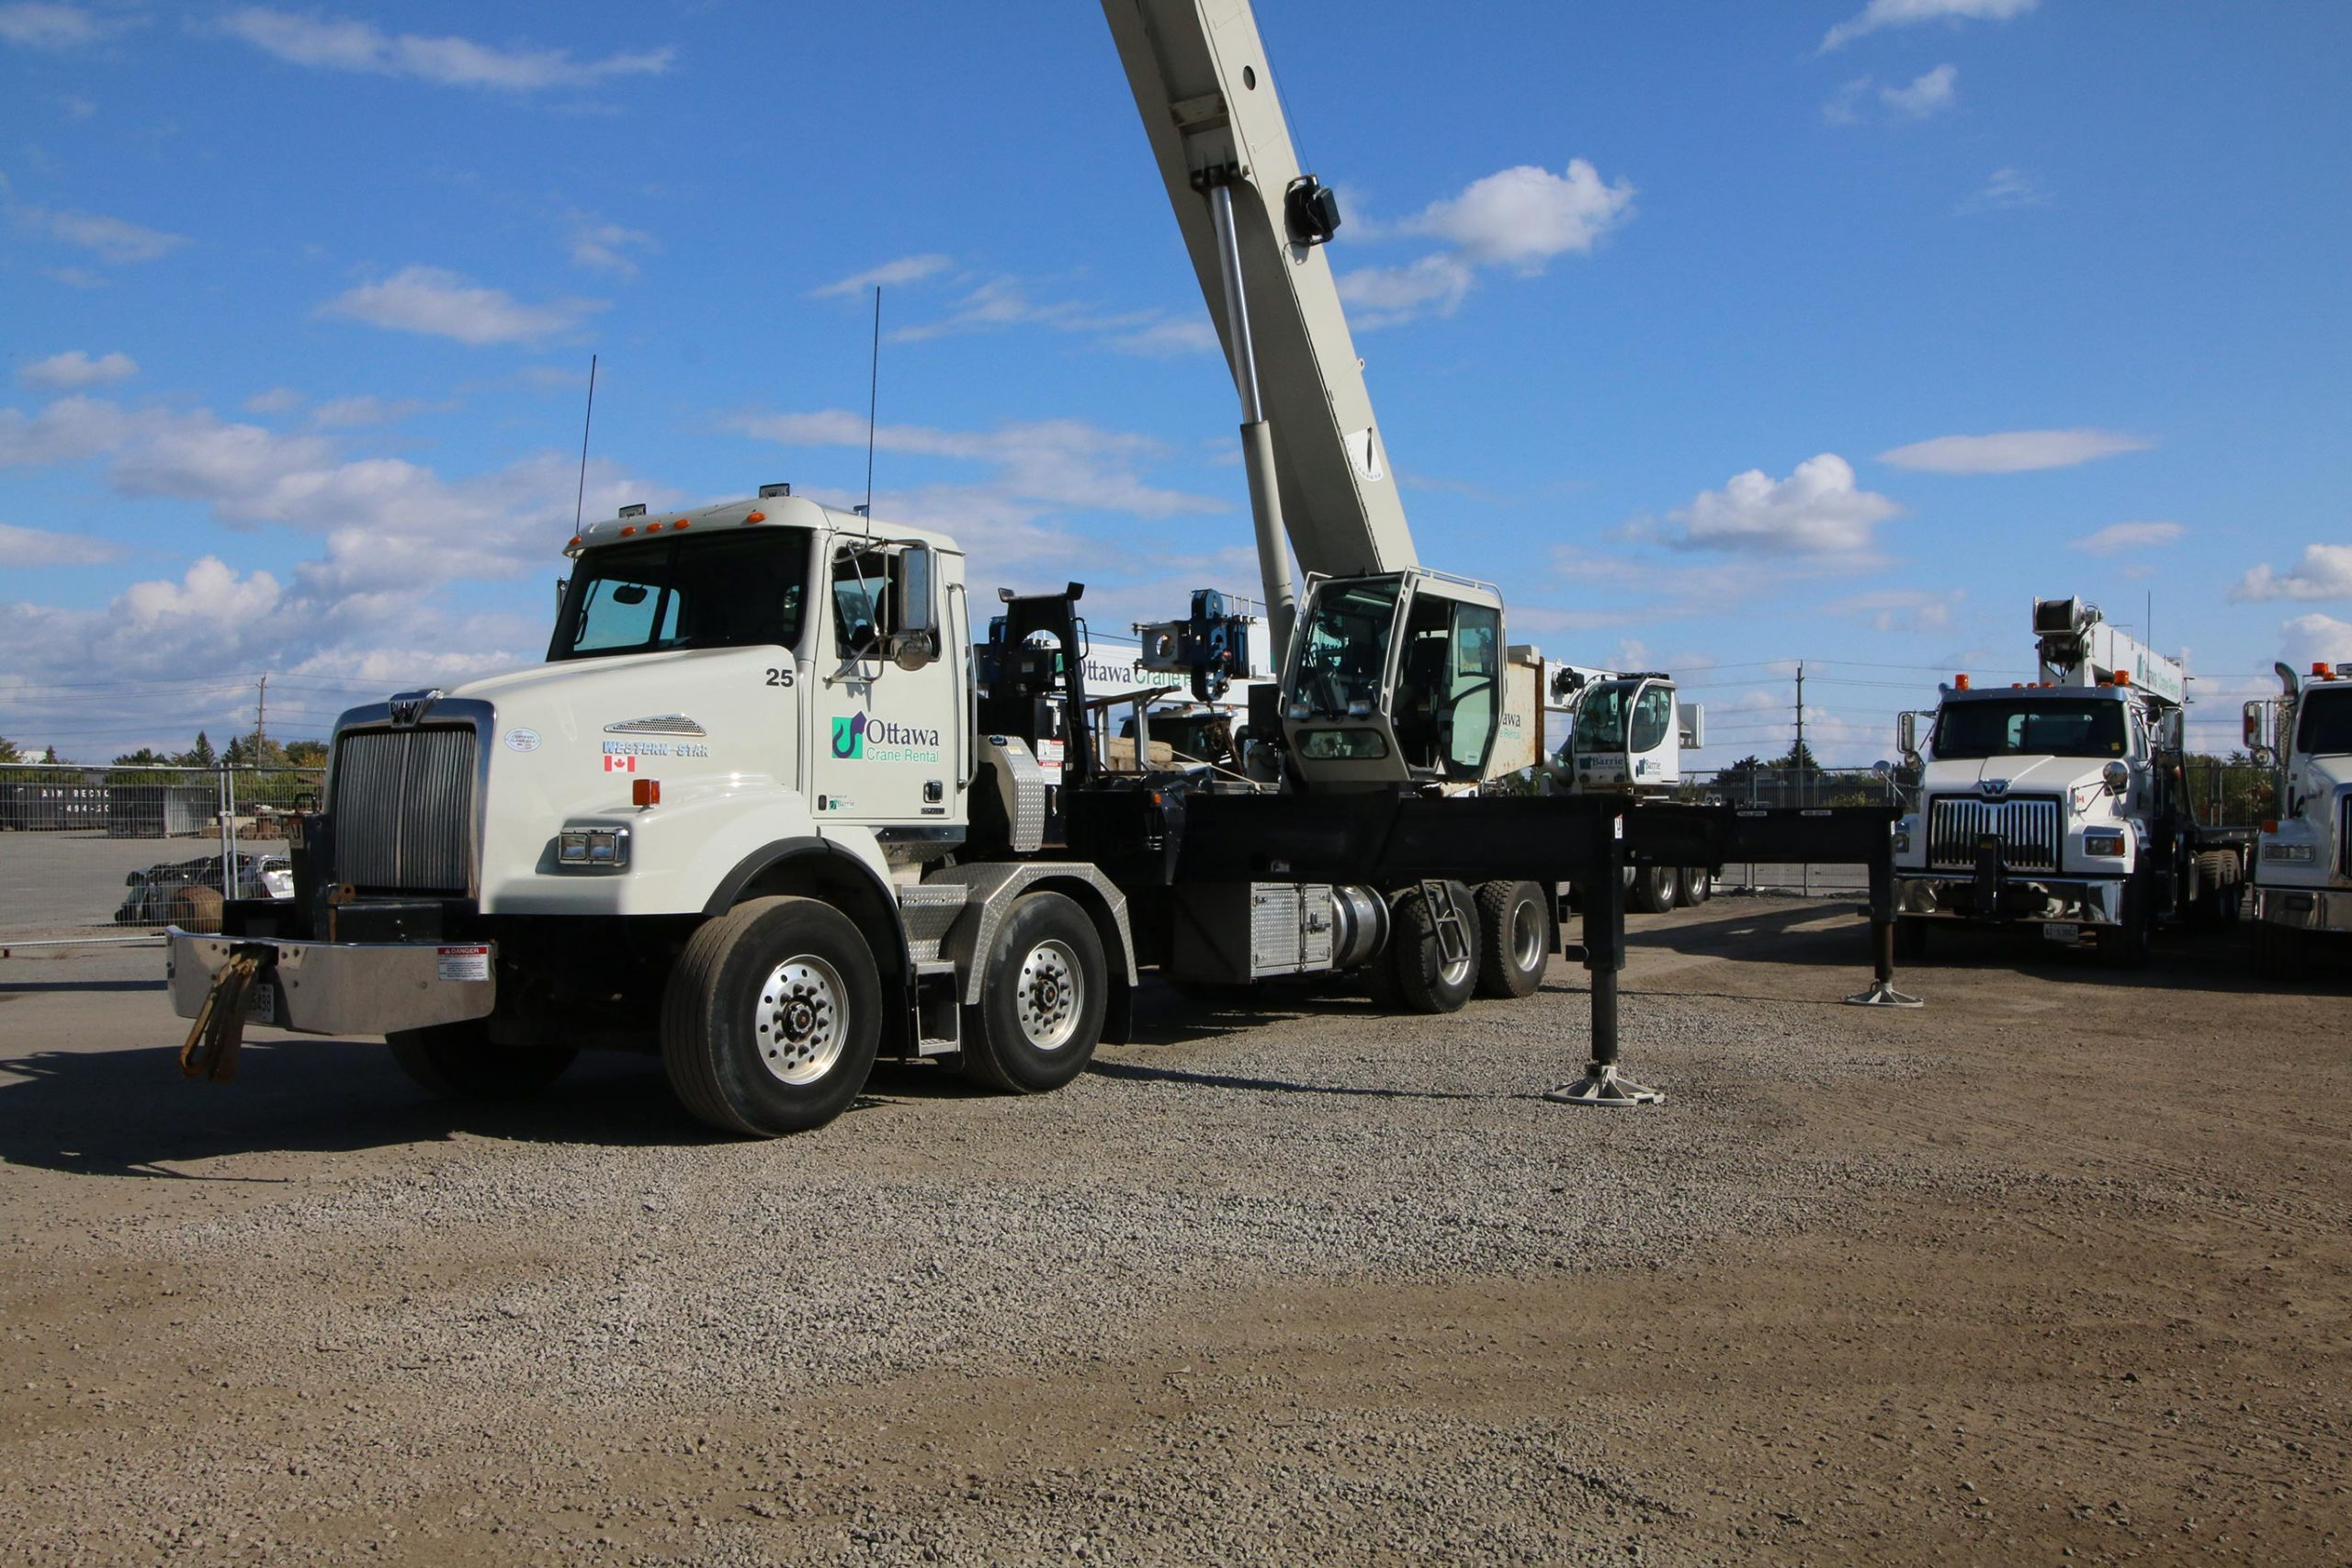 45 Ton National Mobile Crane